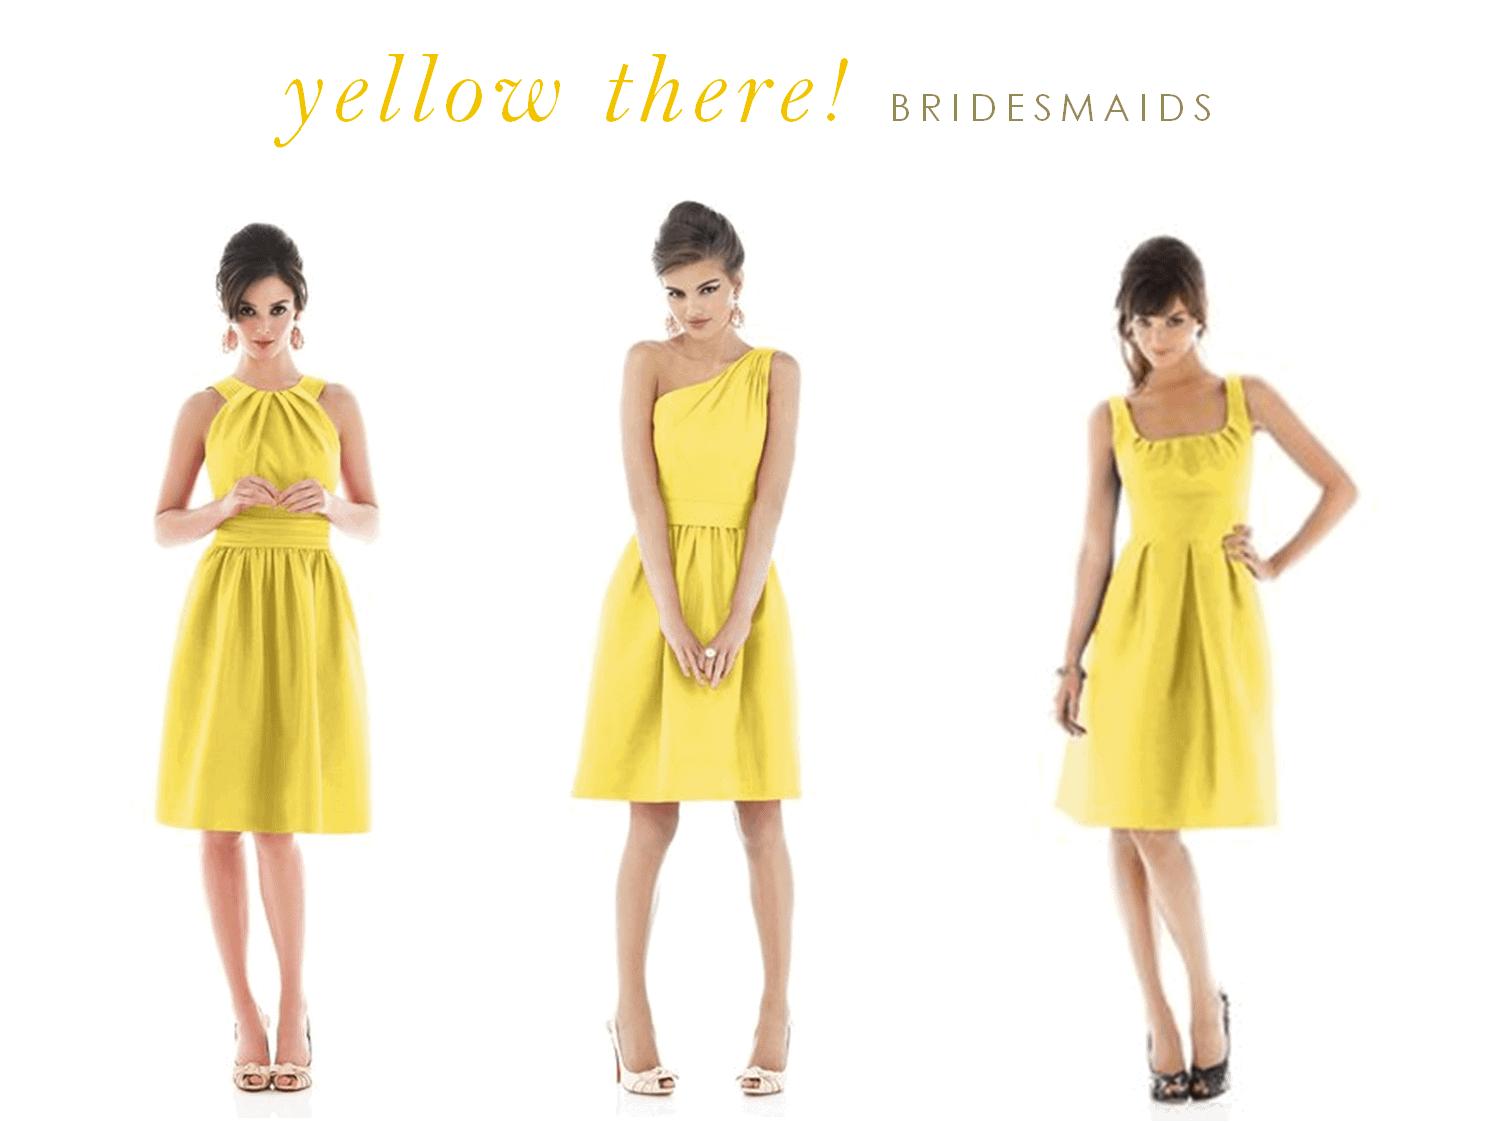 yellow dresses yellow wedding dress Yellow Dresses for Bridesmaids and Guests